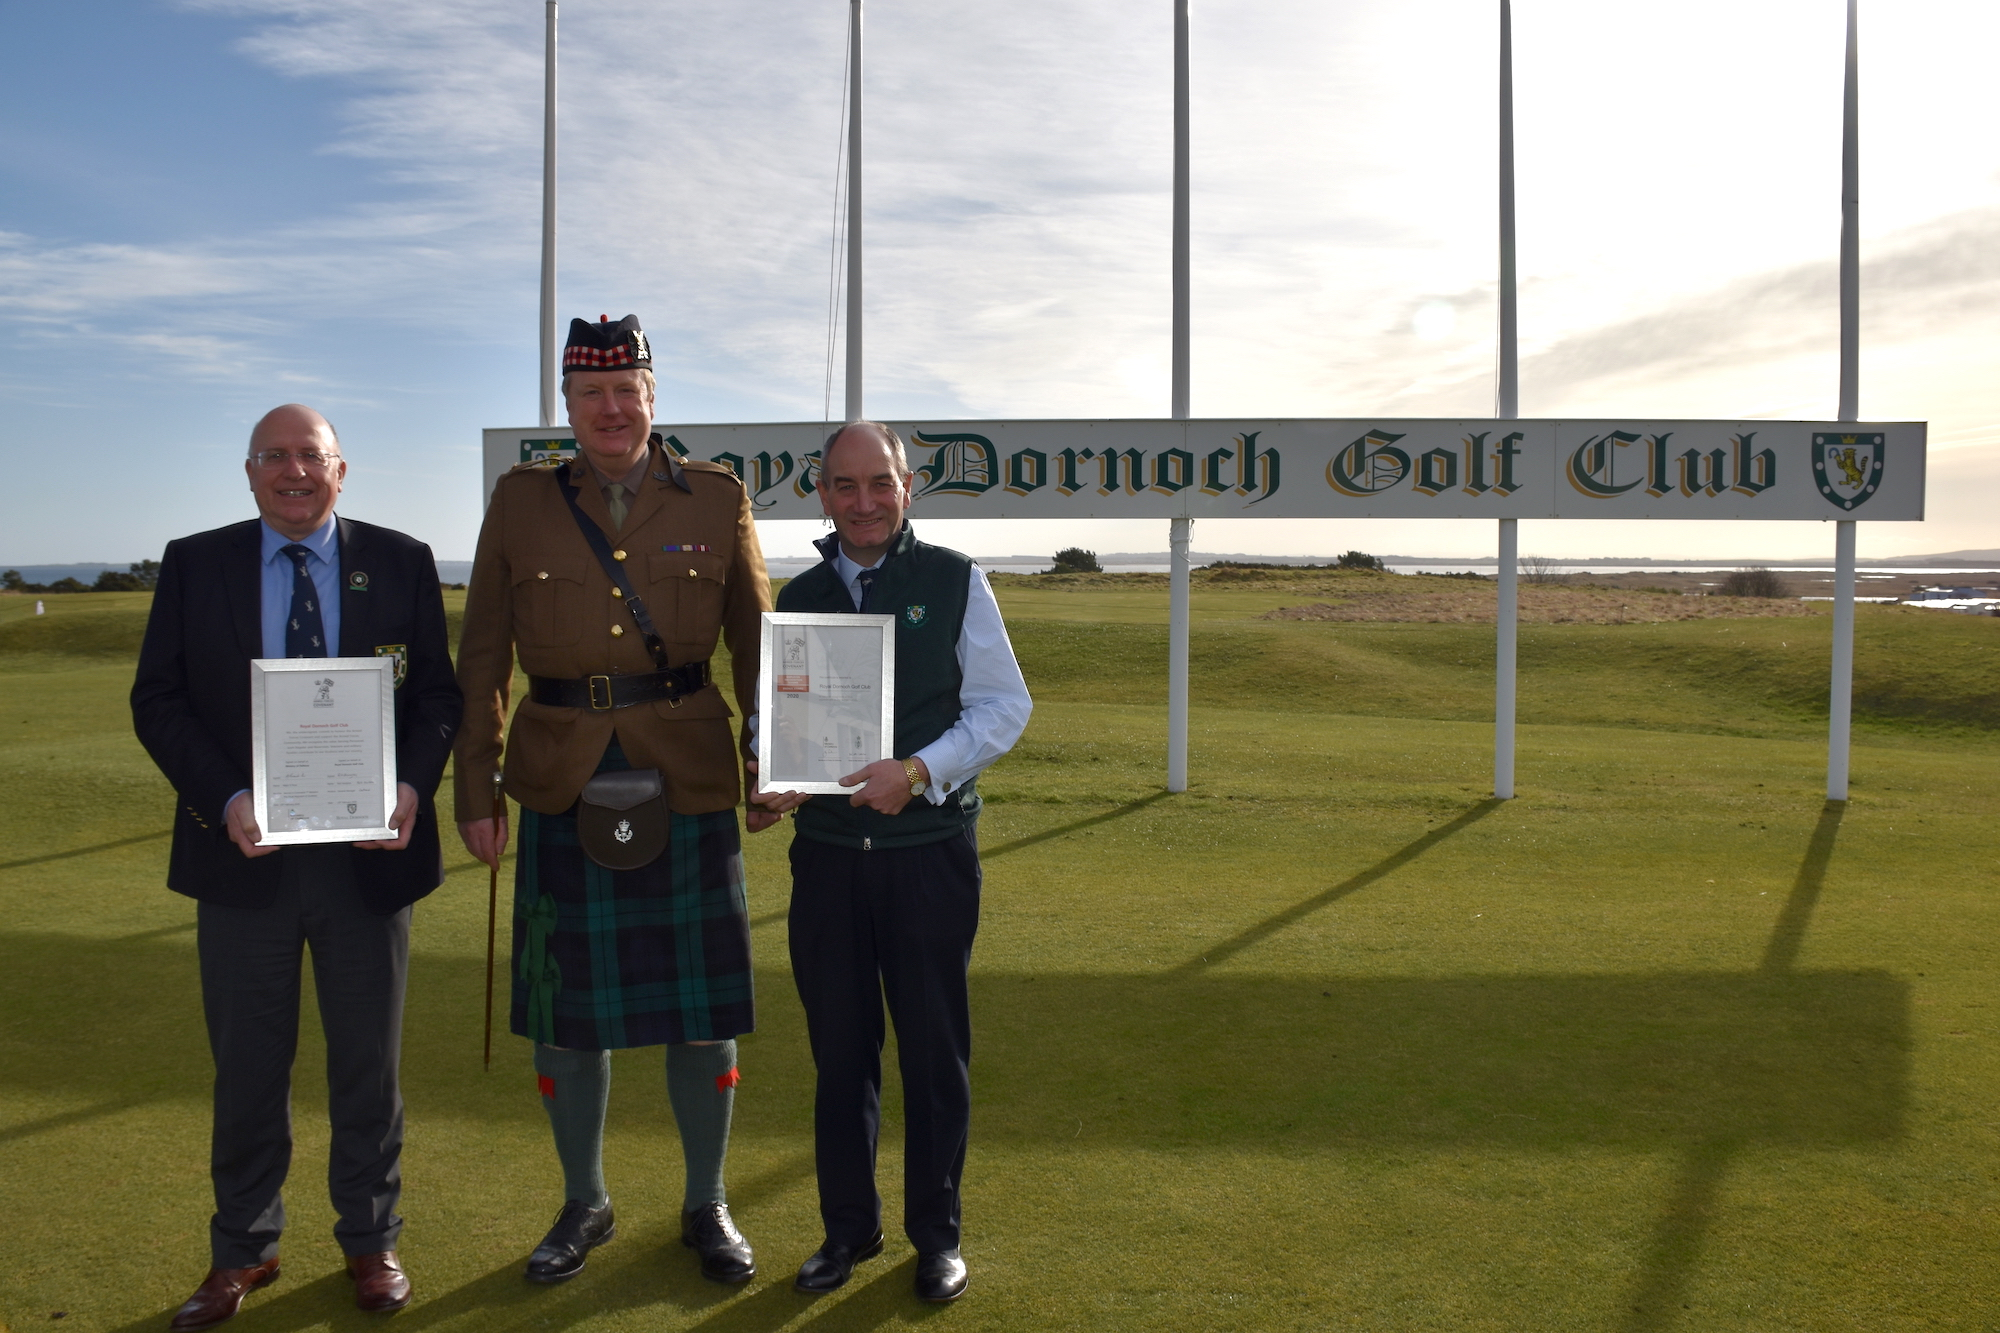 Royal Dornoch captain Rob Murray, Major Alec Rose, Battalion second in command, 7 SCOTS. and club general manager Neil Hampton